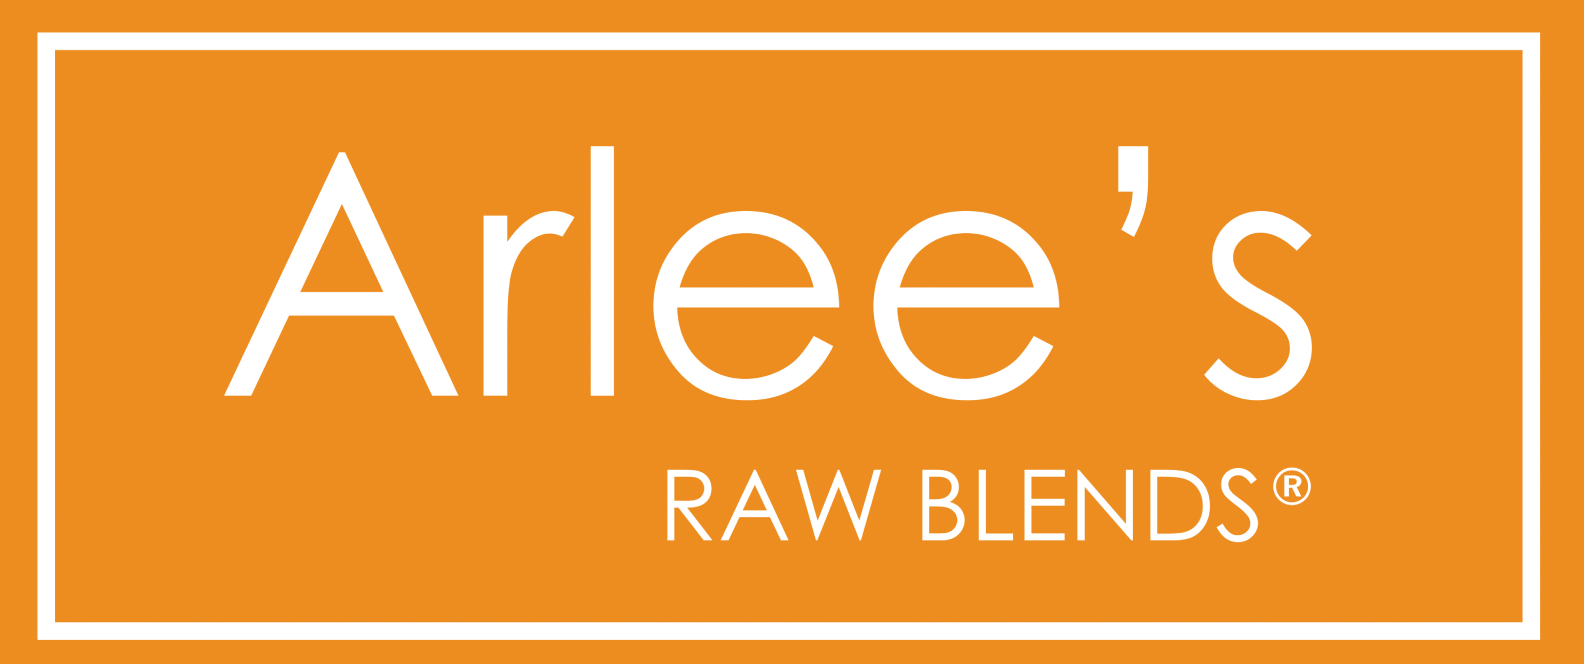 Arlee Raw Blends Home